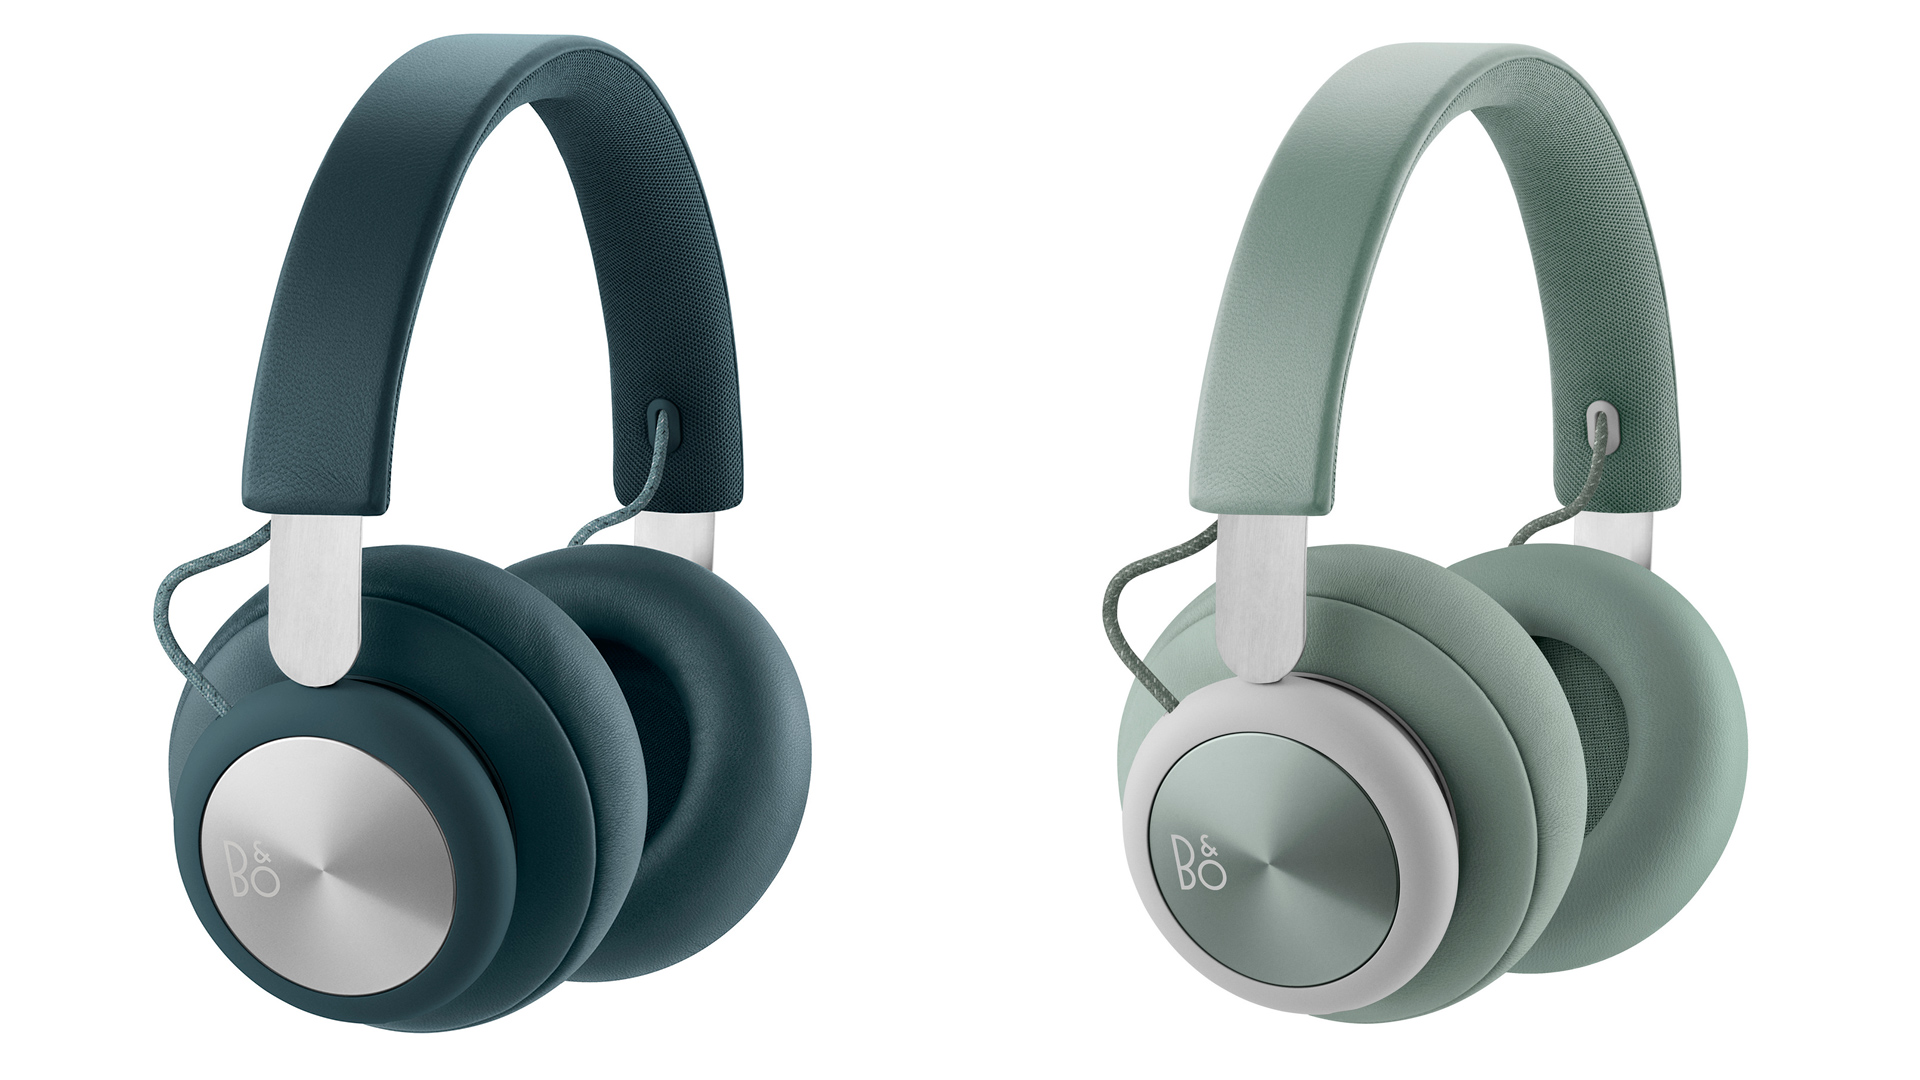 B&O goes green with new headphone and speaker collection